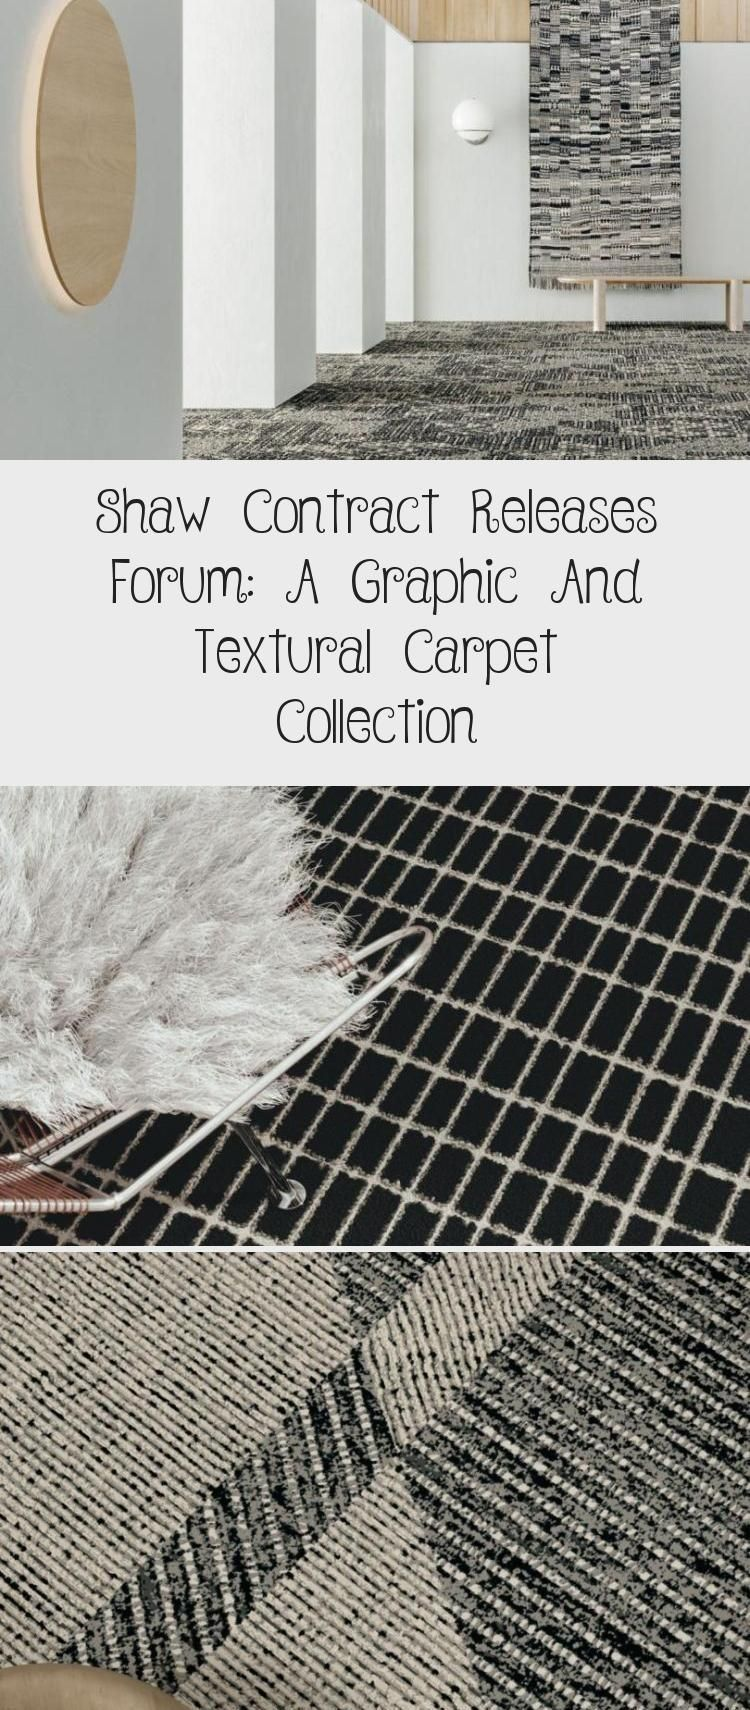 Shaw Contract Releases Forum A Graphic and Textural Carpet Collection  Design  Shaw Contract Releases Forum A Graphic and Textural Carpet Collection  Design Milk